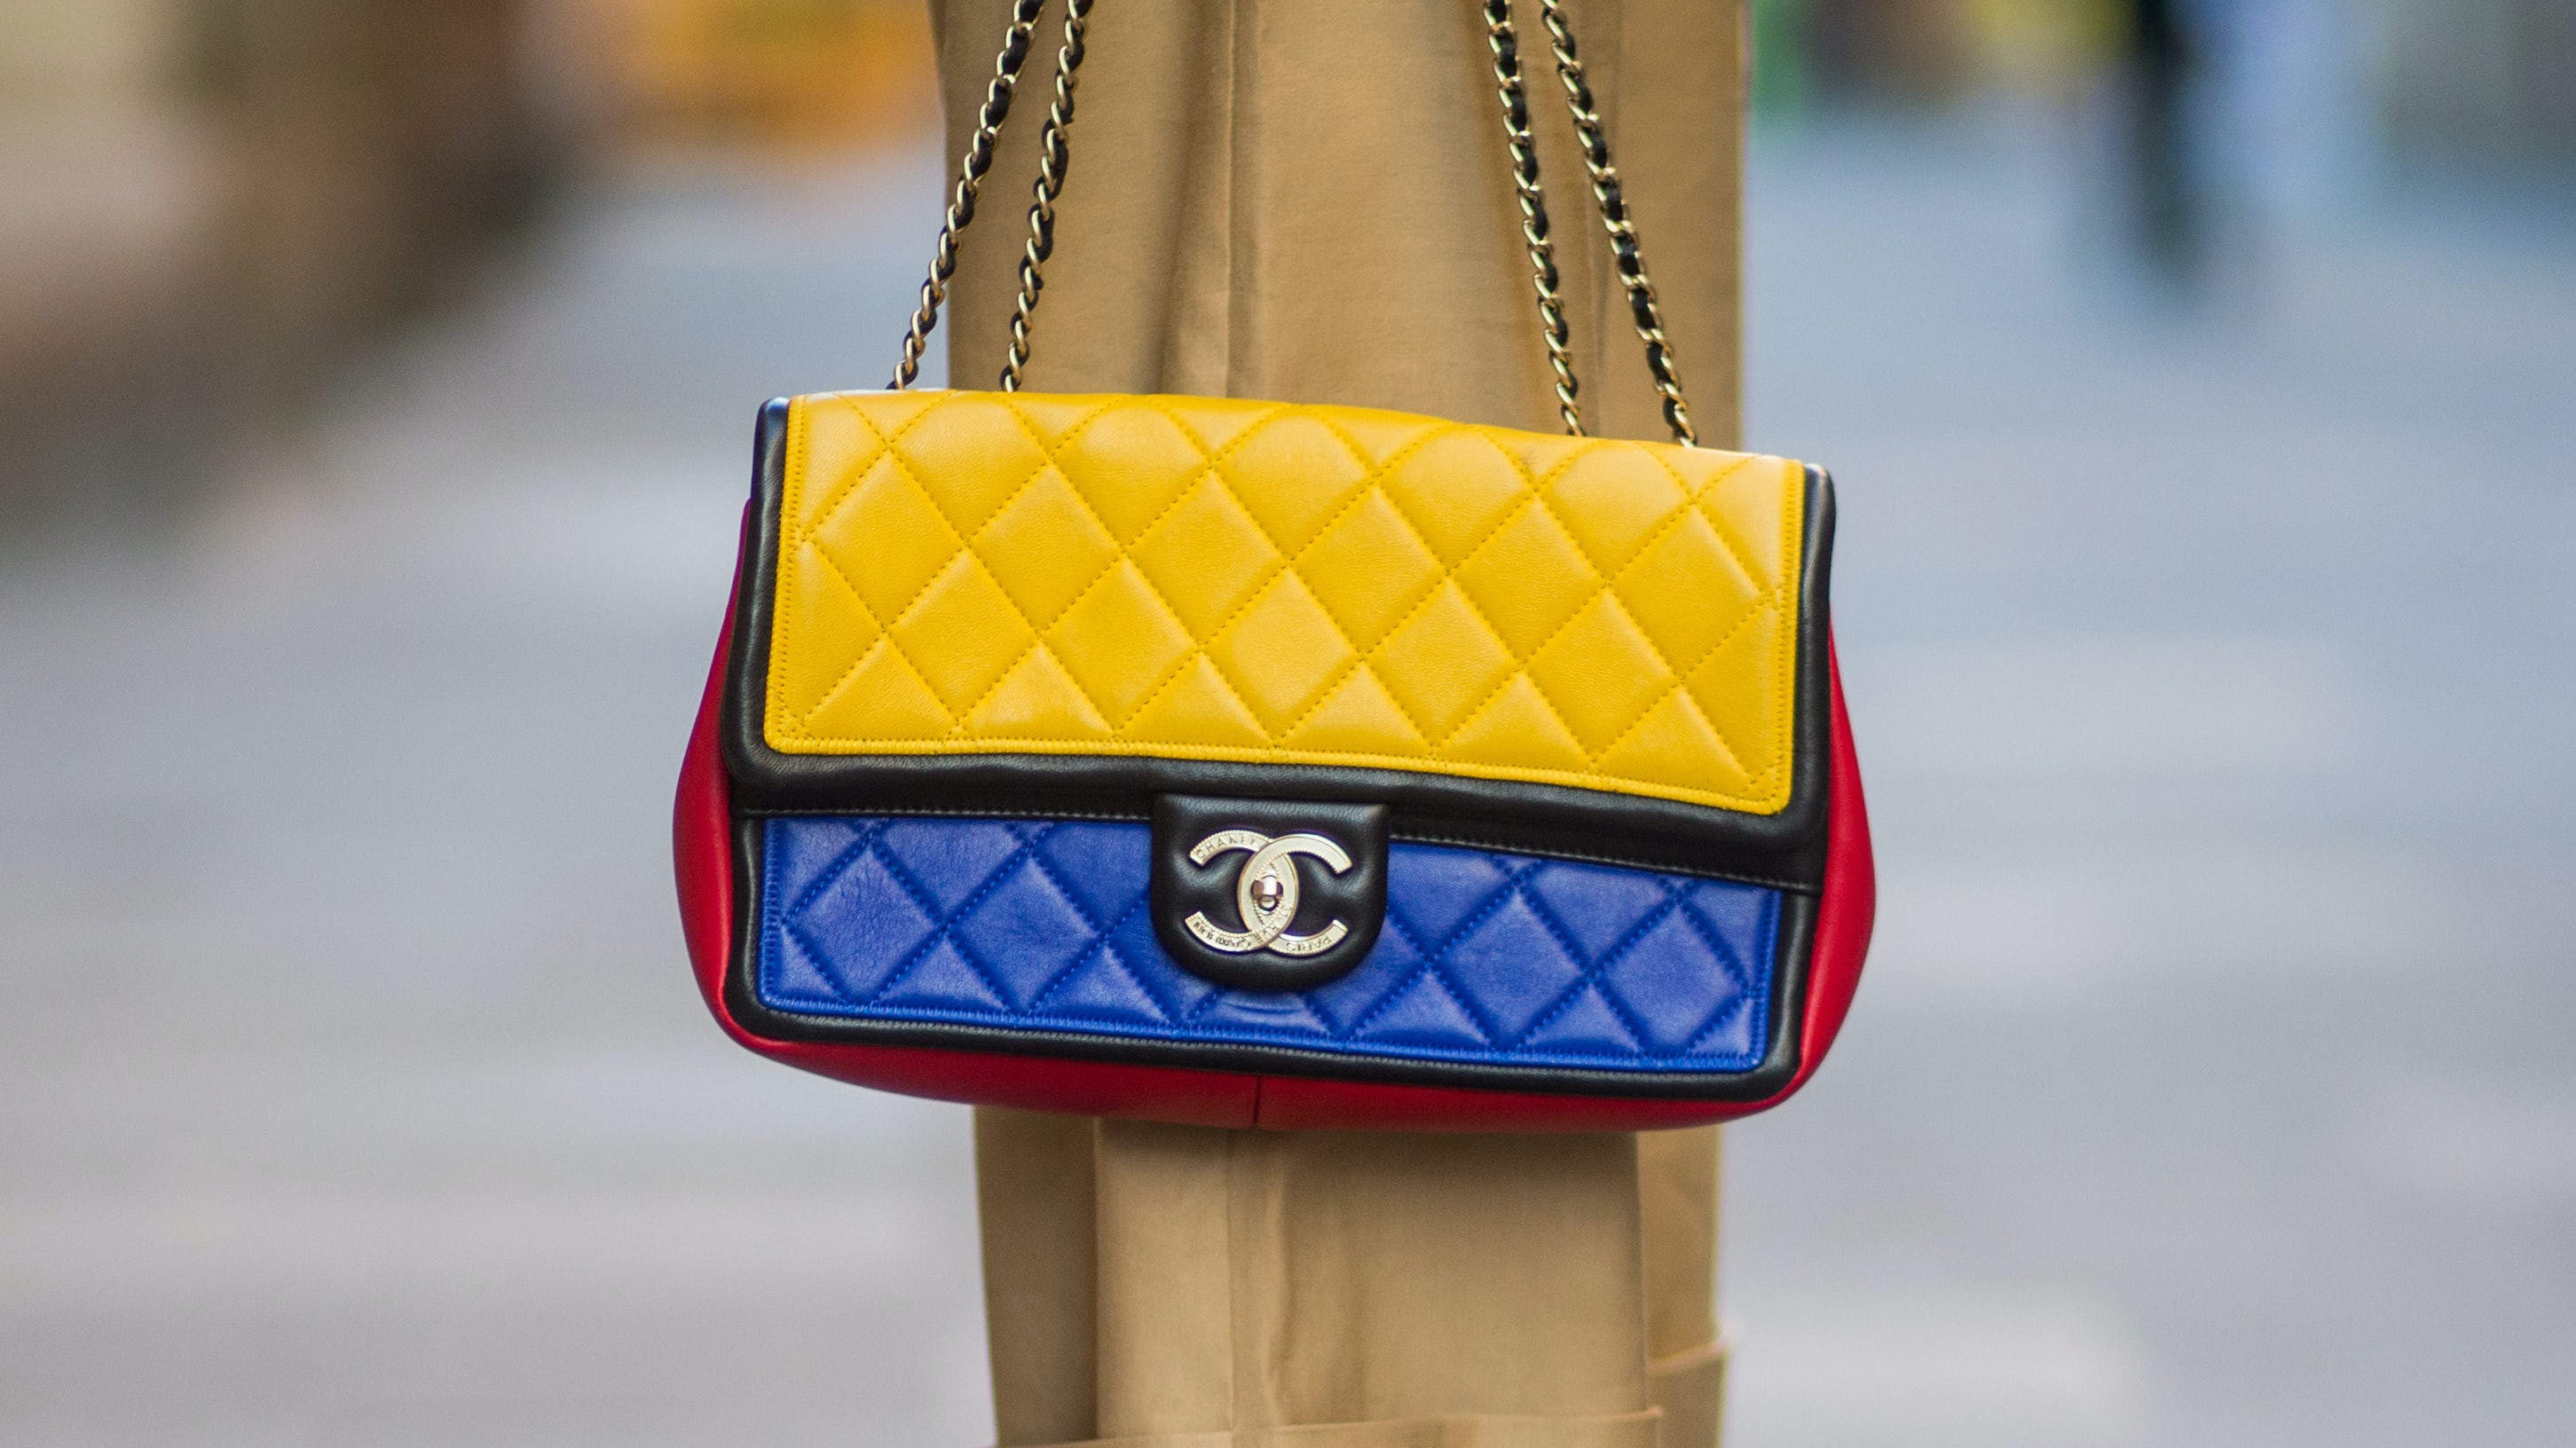 Chanel 2.55 bag in red, blue and yellow with golden logo buckle | Source: Getty